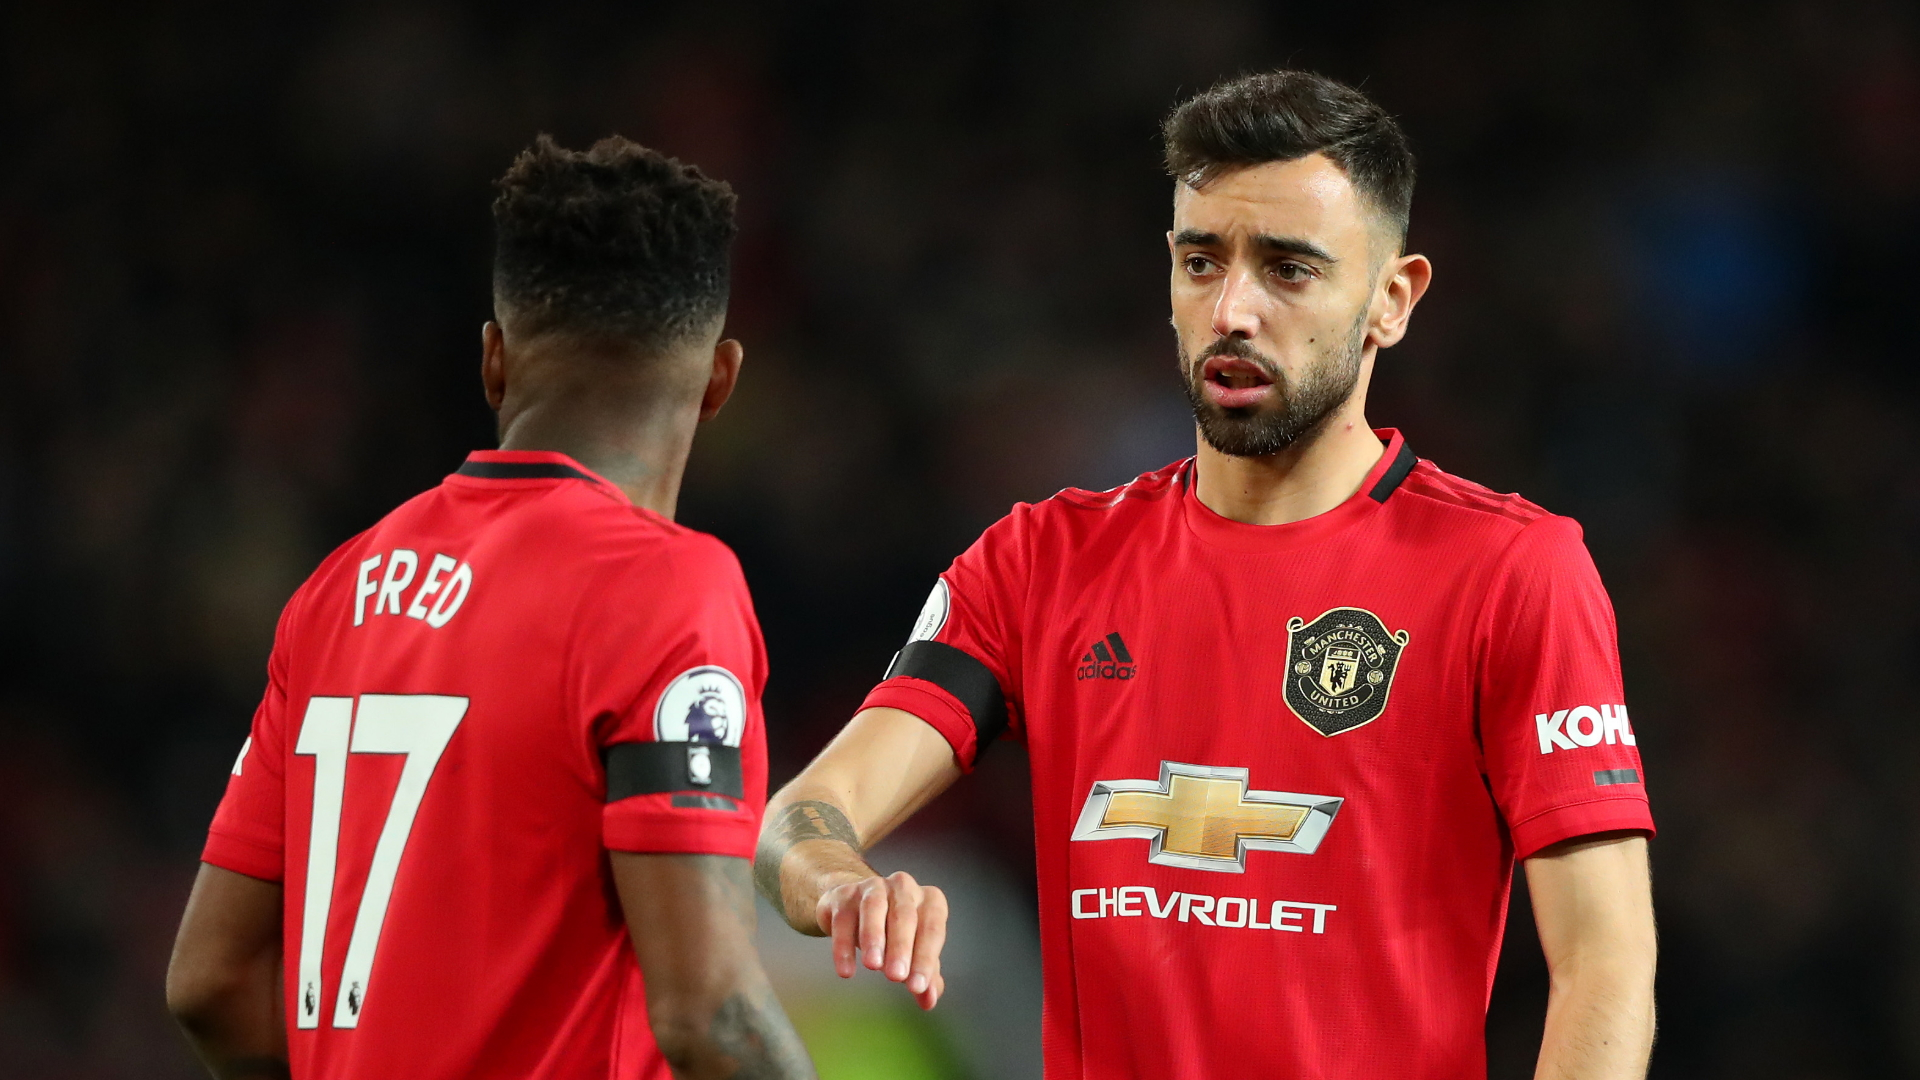 Fred confident Bruno Fernandes arrival at Man Utd will help him score more goals